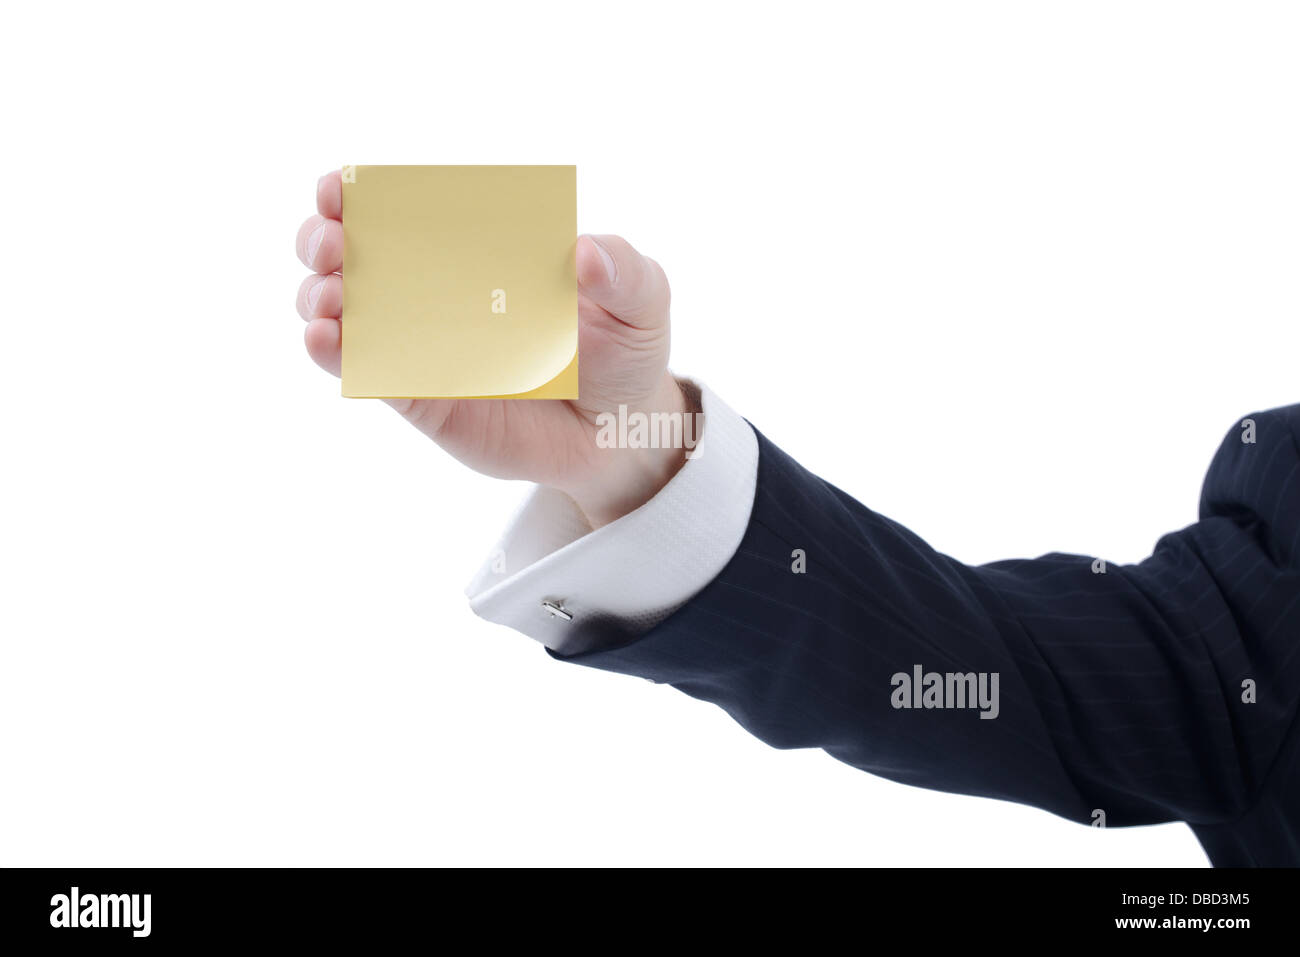 businessman holding a yellow stick reminder note isolated on white background - Stock Image